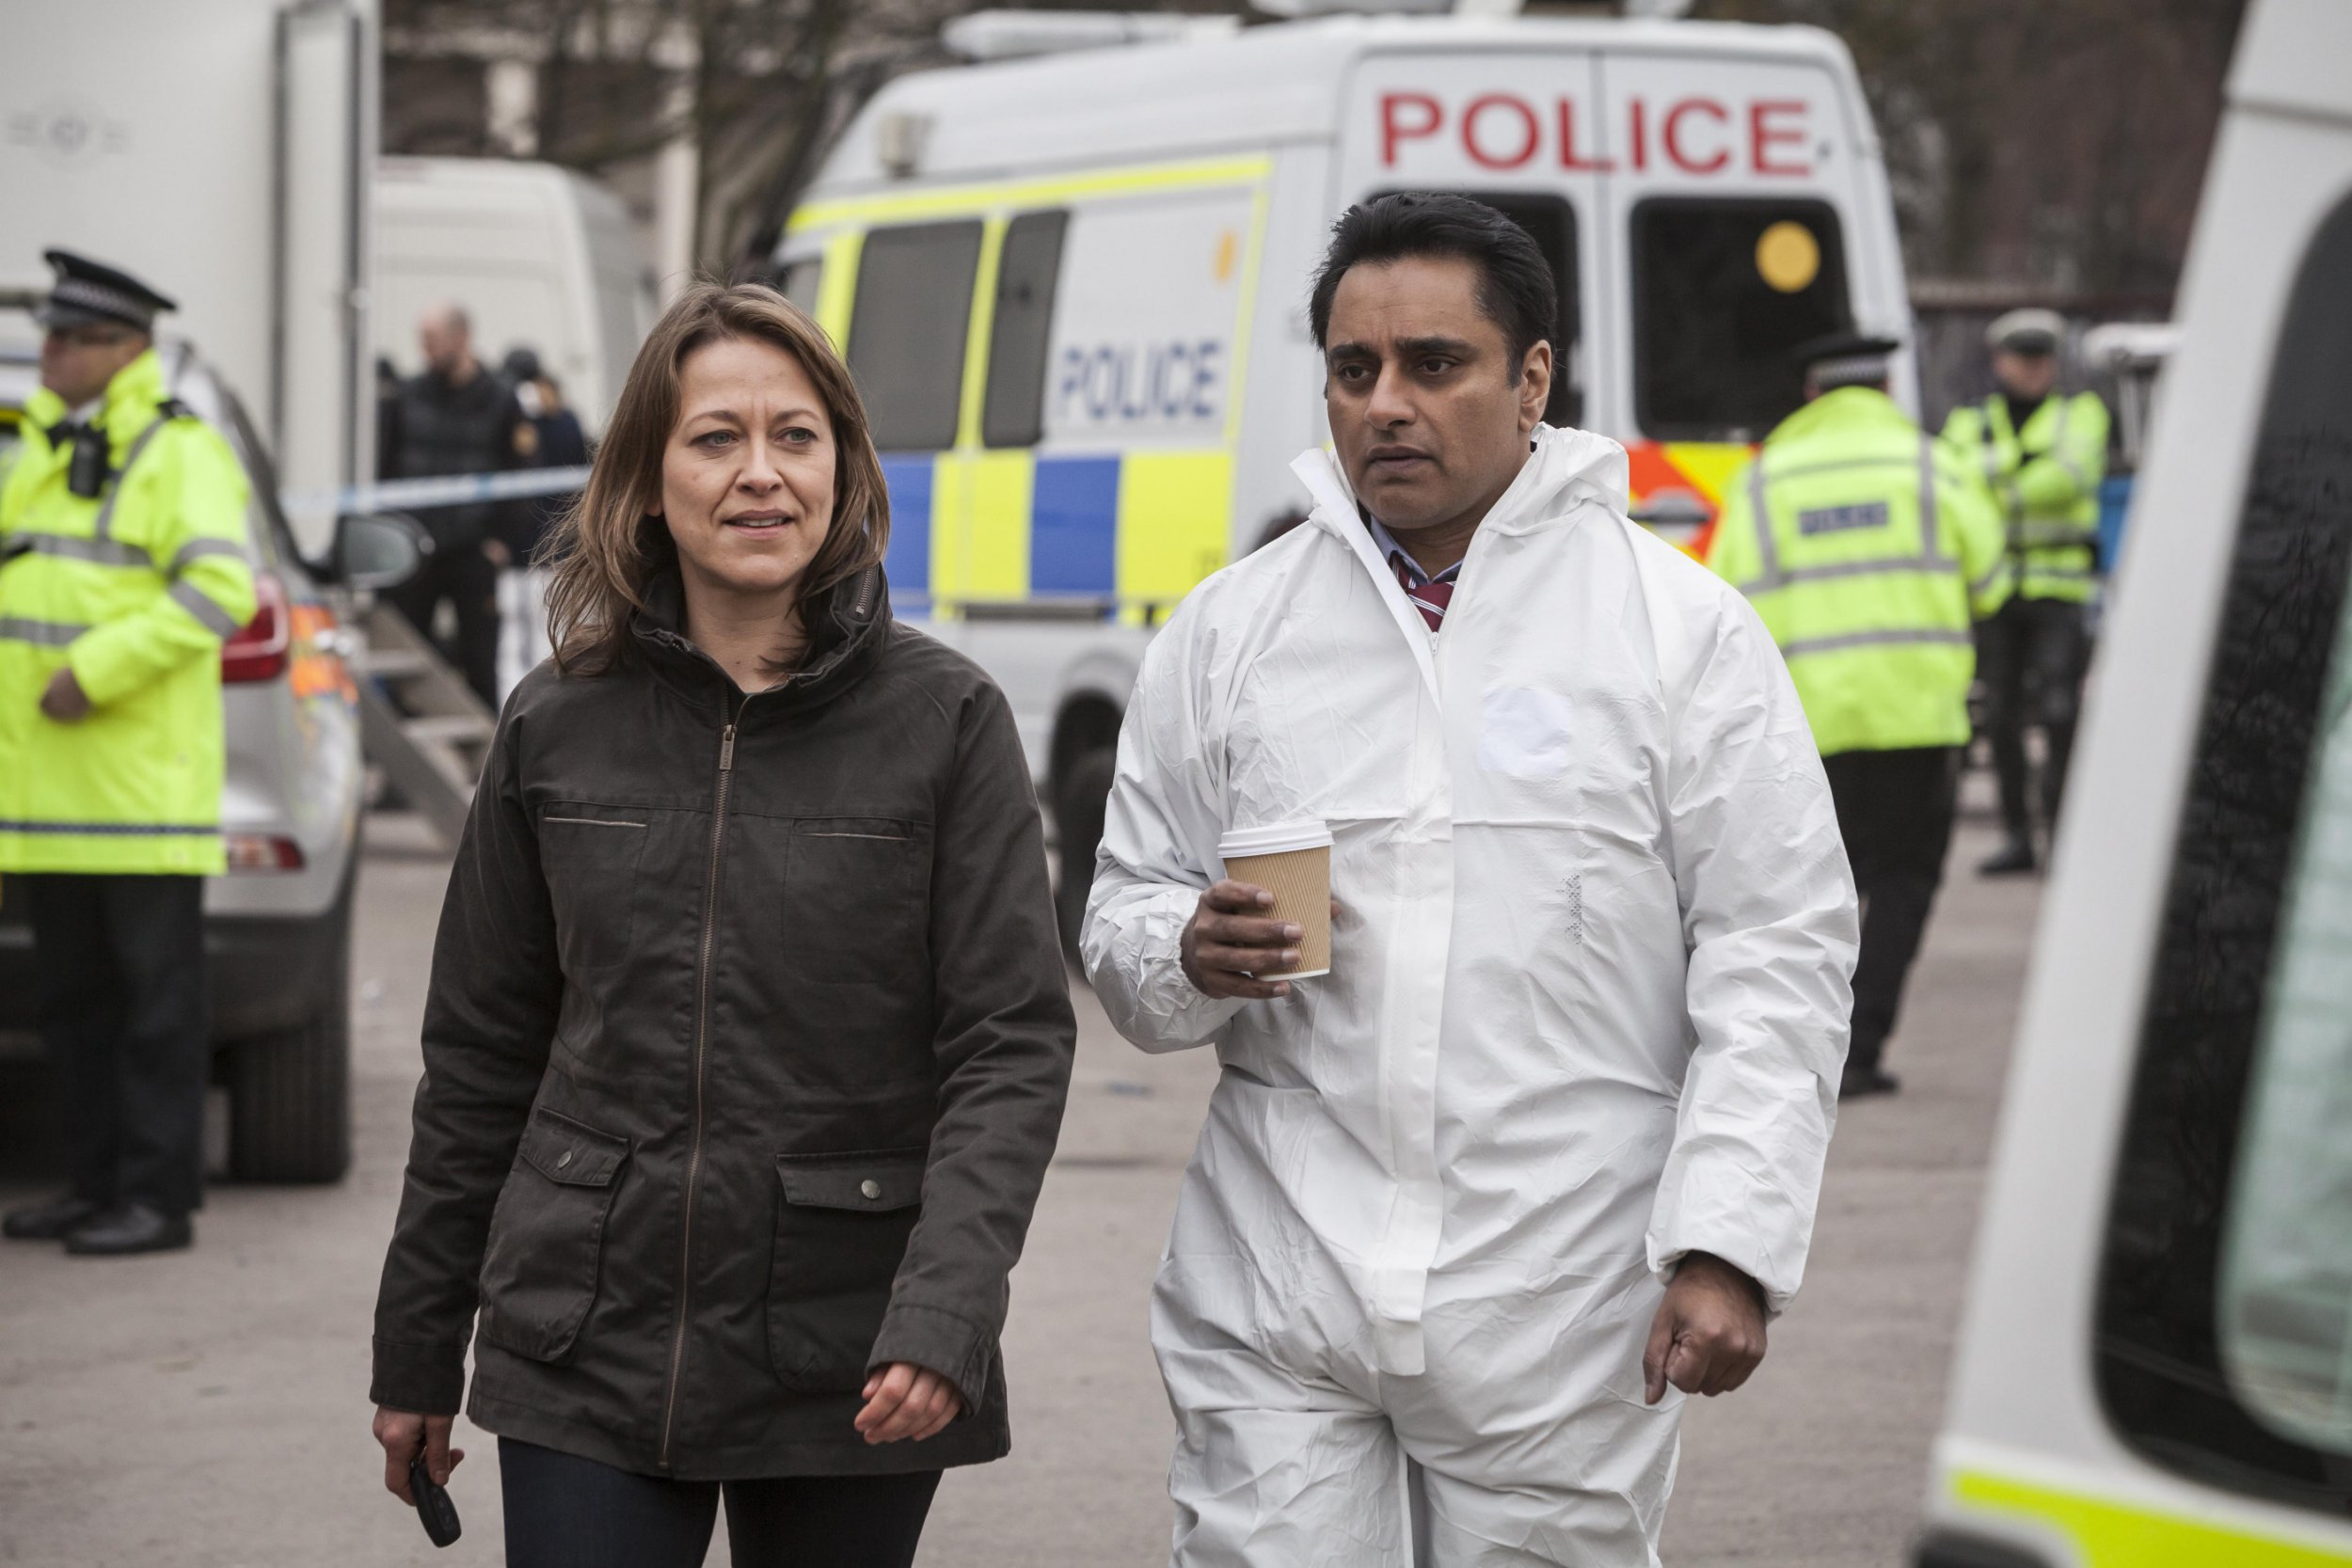 Television programme: UNFORGOTTEN EPISODE 1 Pictured : NICOLA WALKER as DCI Cassie Stuart and SANJEEV BHASKAR as DS Sunil Khan. Photographer: JOHN ROGERS This image is the copyright of ITV and must be credited. The images are for one use only and to be used in relation to UNFORGOTTEN, any further usage could incur a fee. MAINSTREET PICTURES FOR ITV